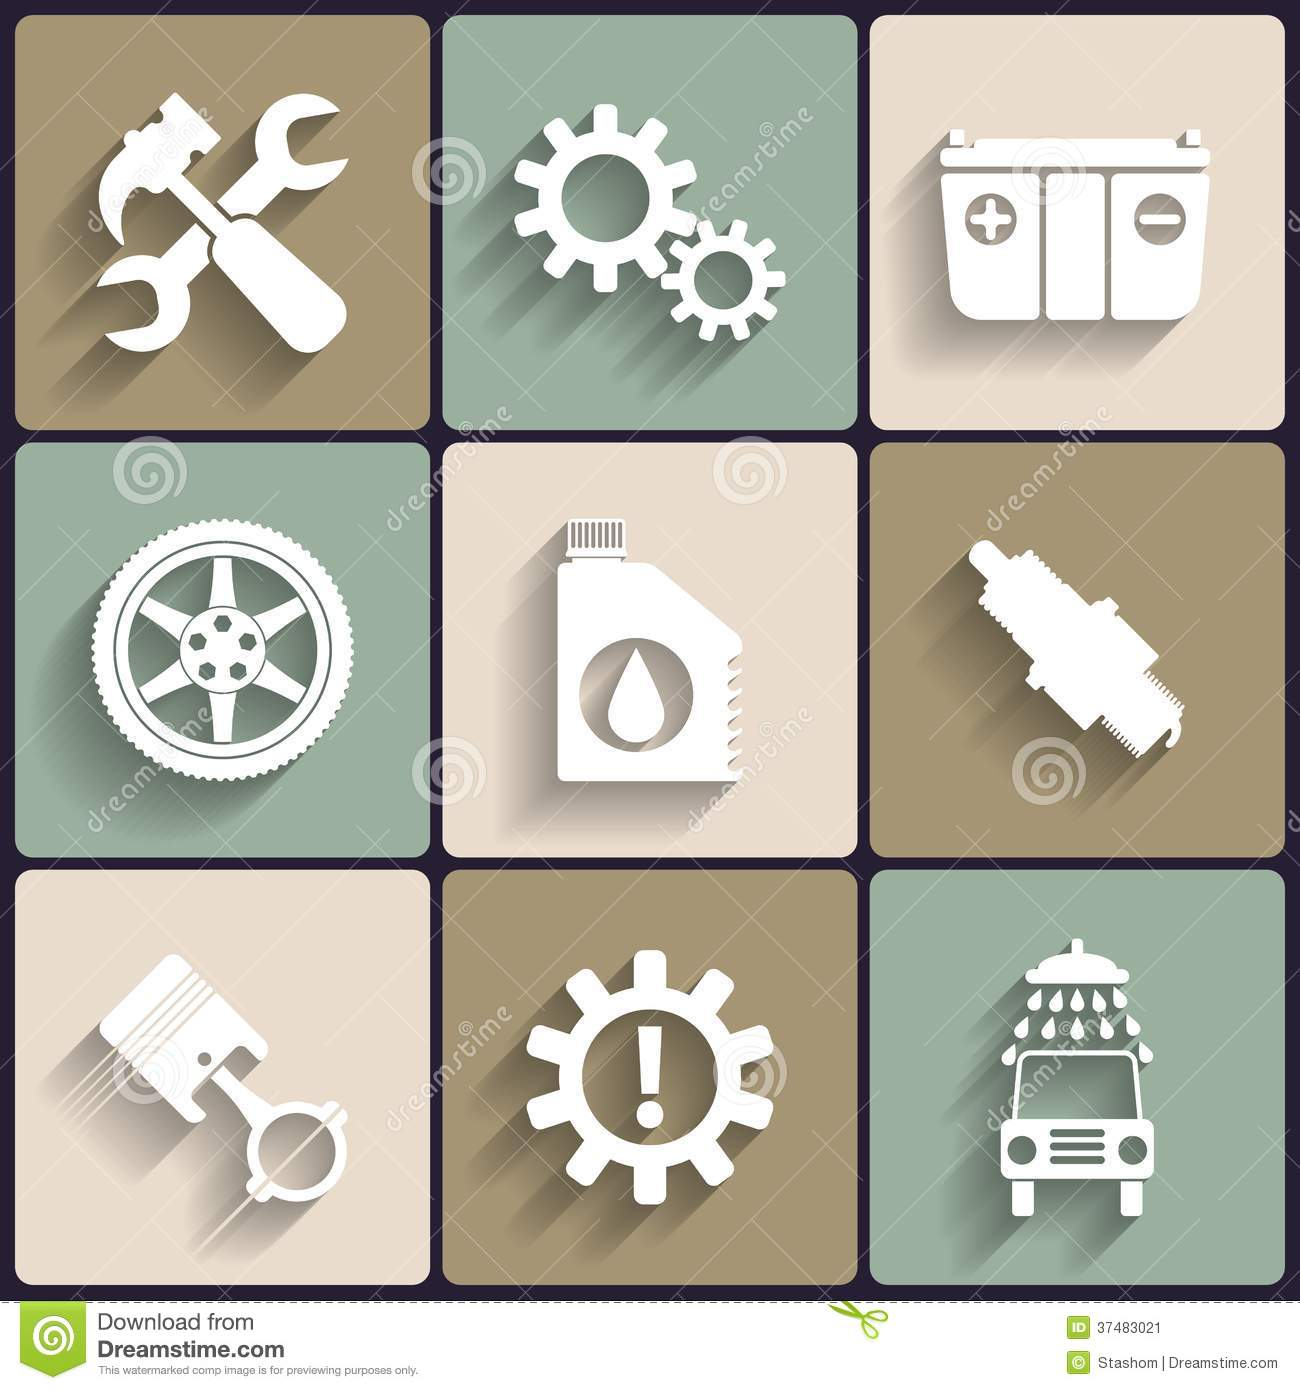 Car Service Maintenance Vector Flat Icon Set. Stock Vector - Image: 37483021